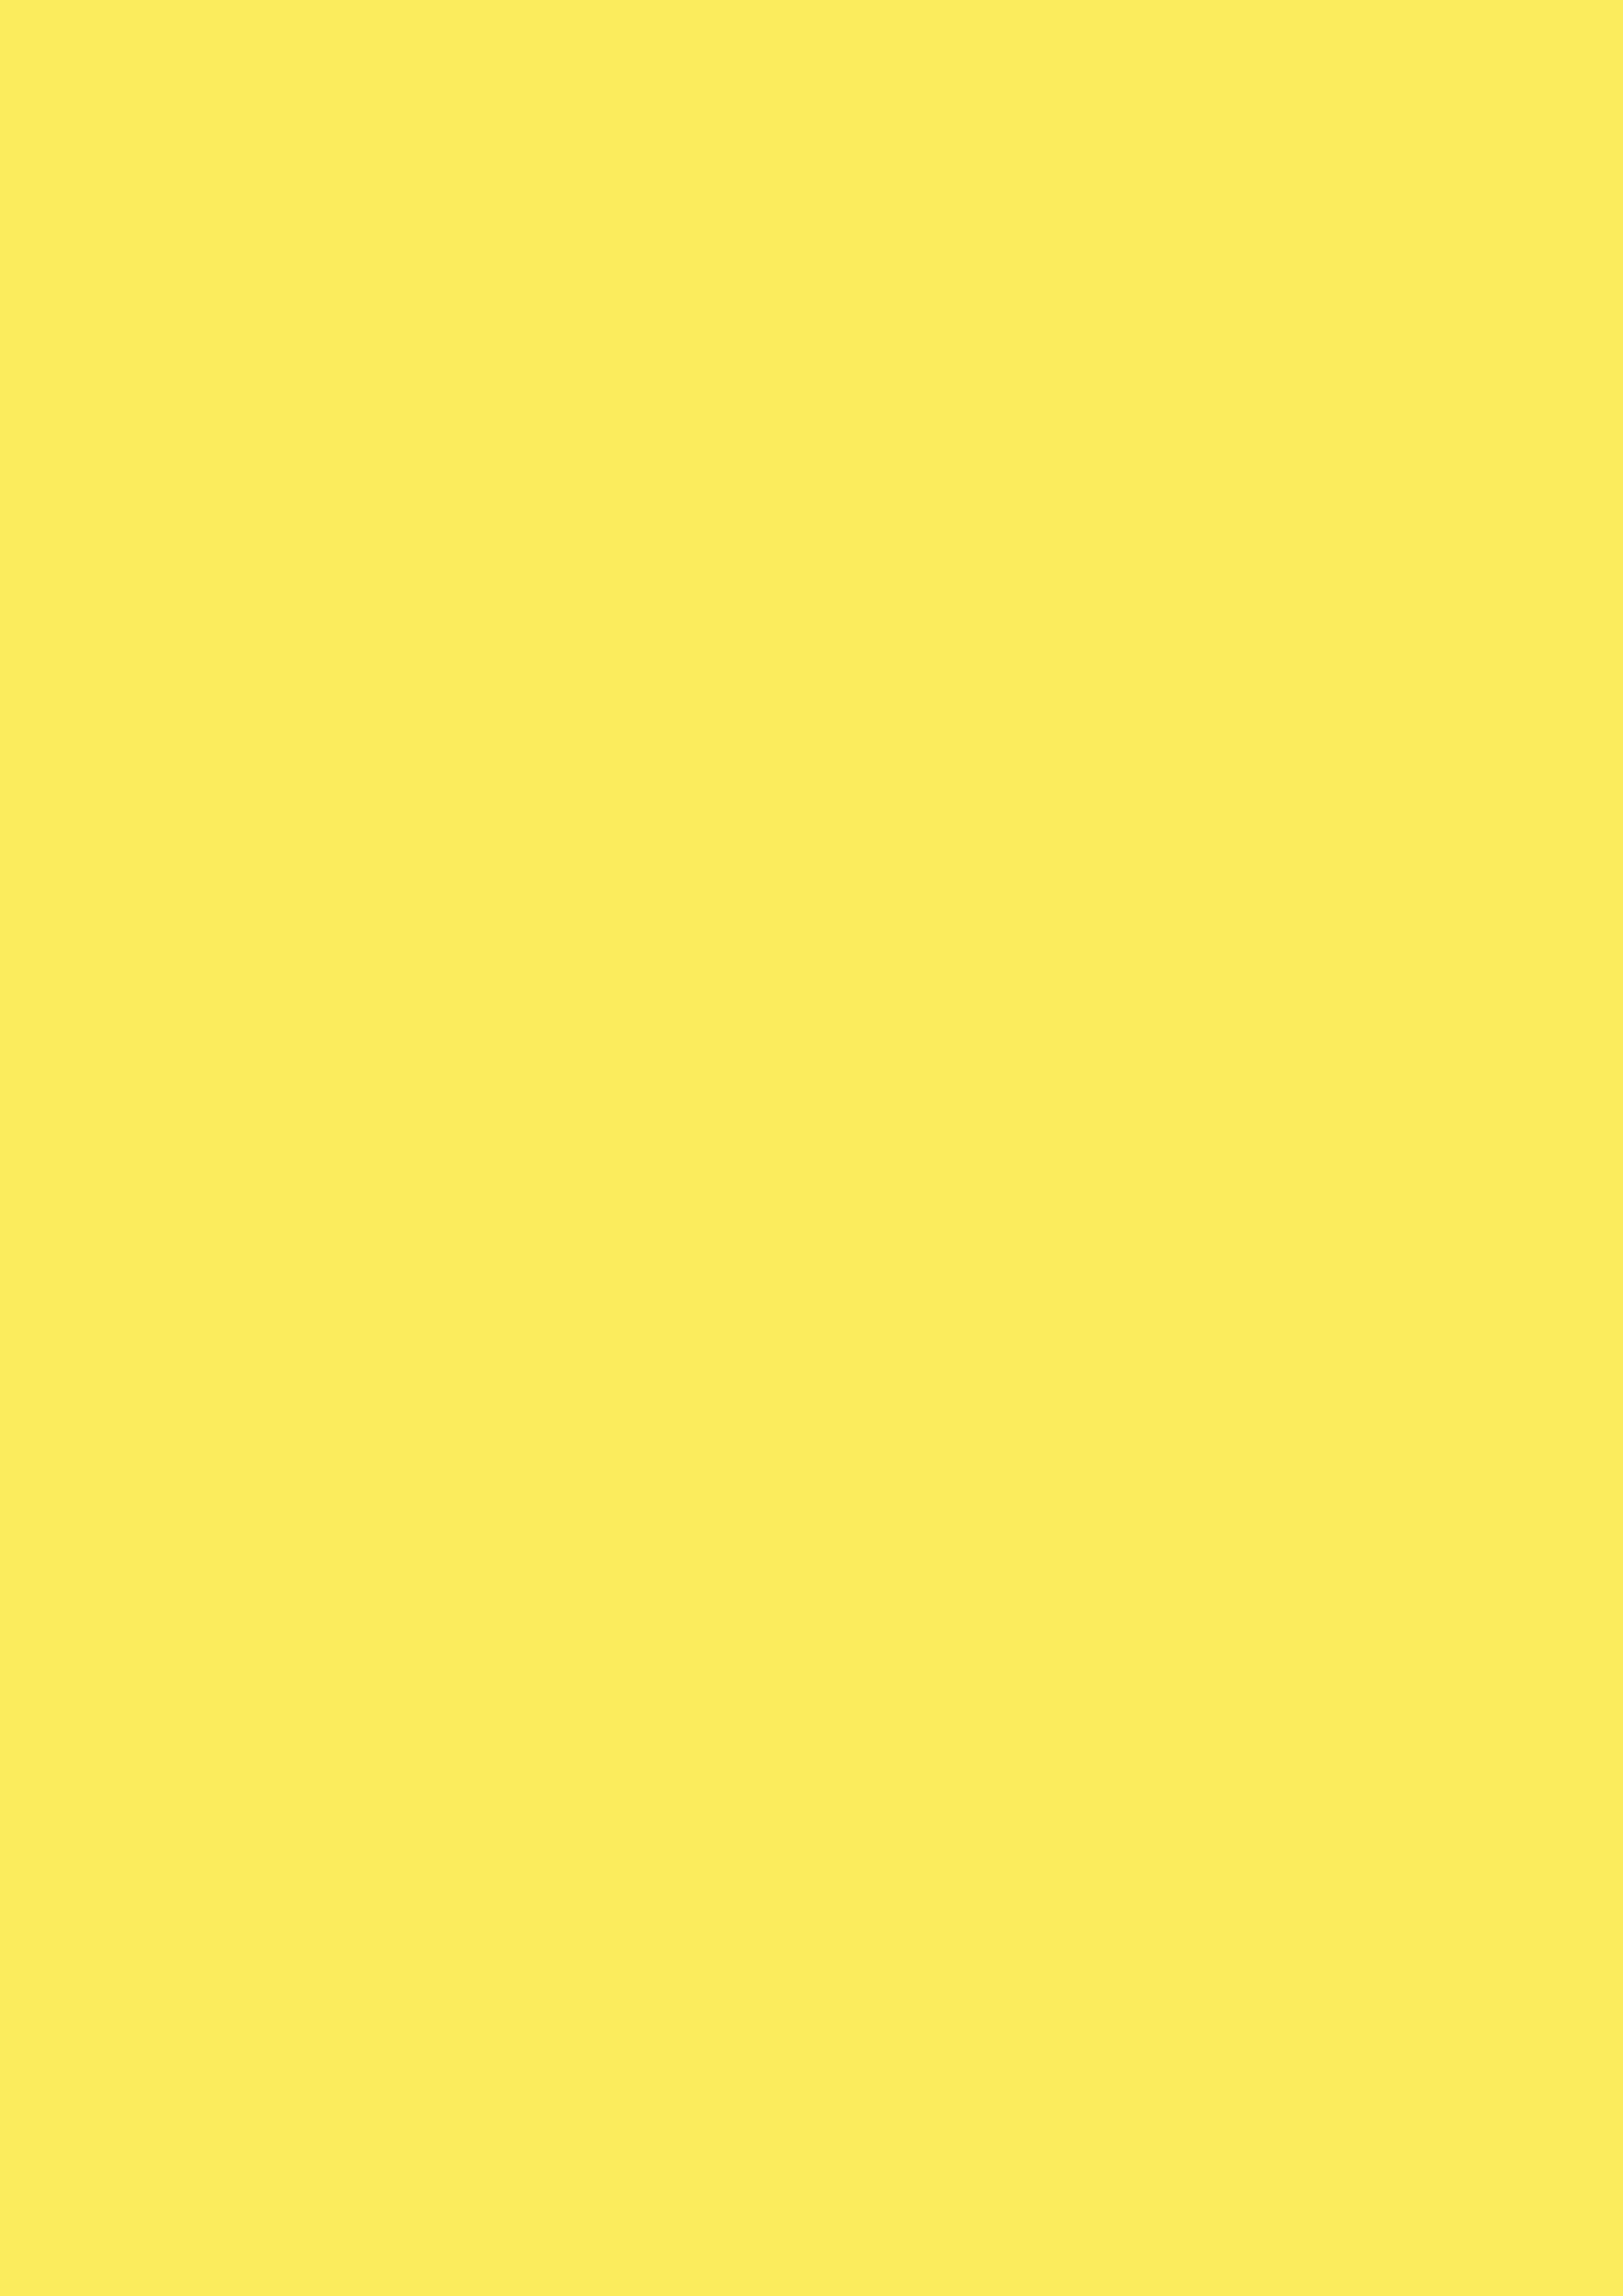 2480x3508 Corn Solid Color Background